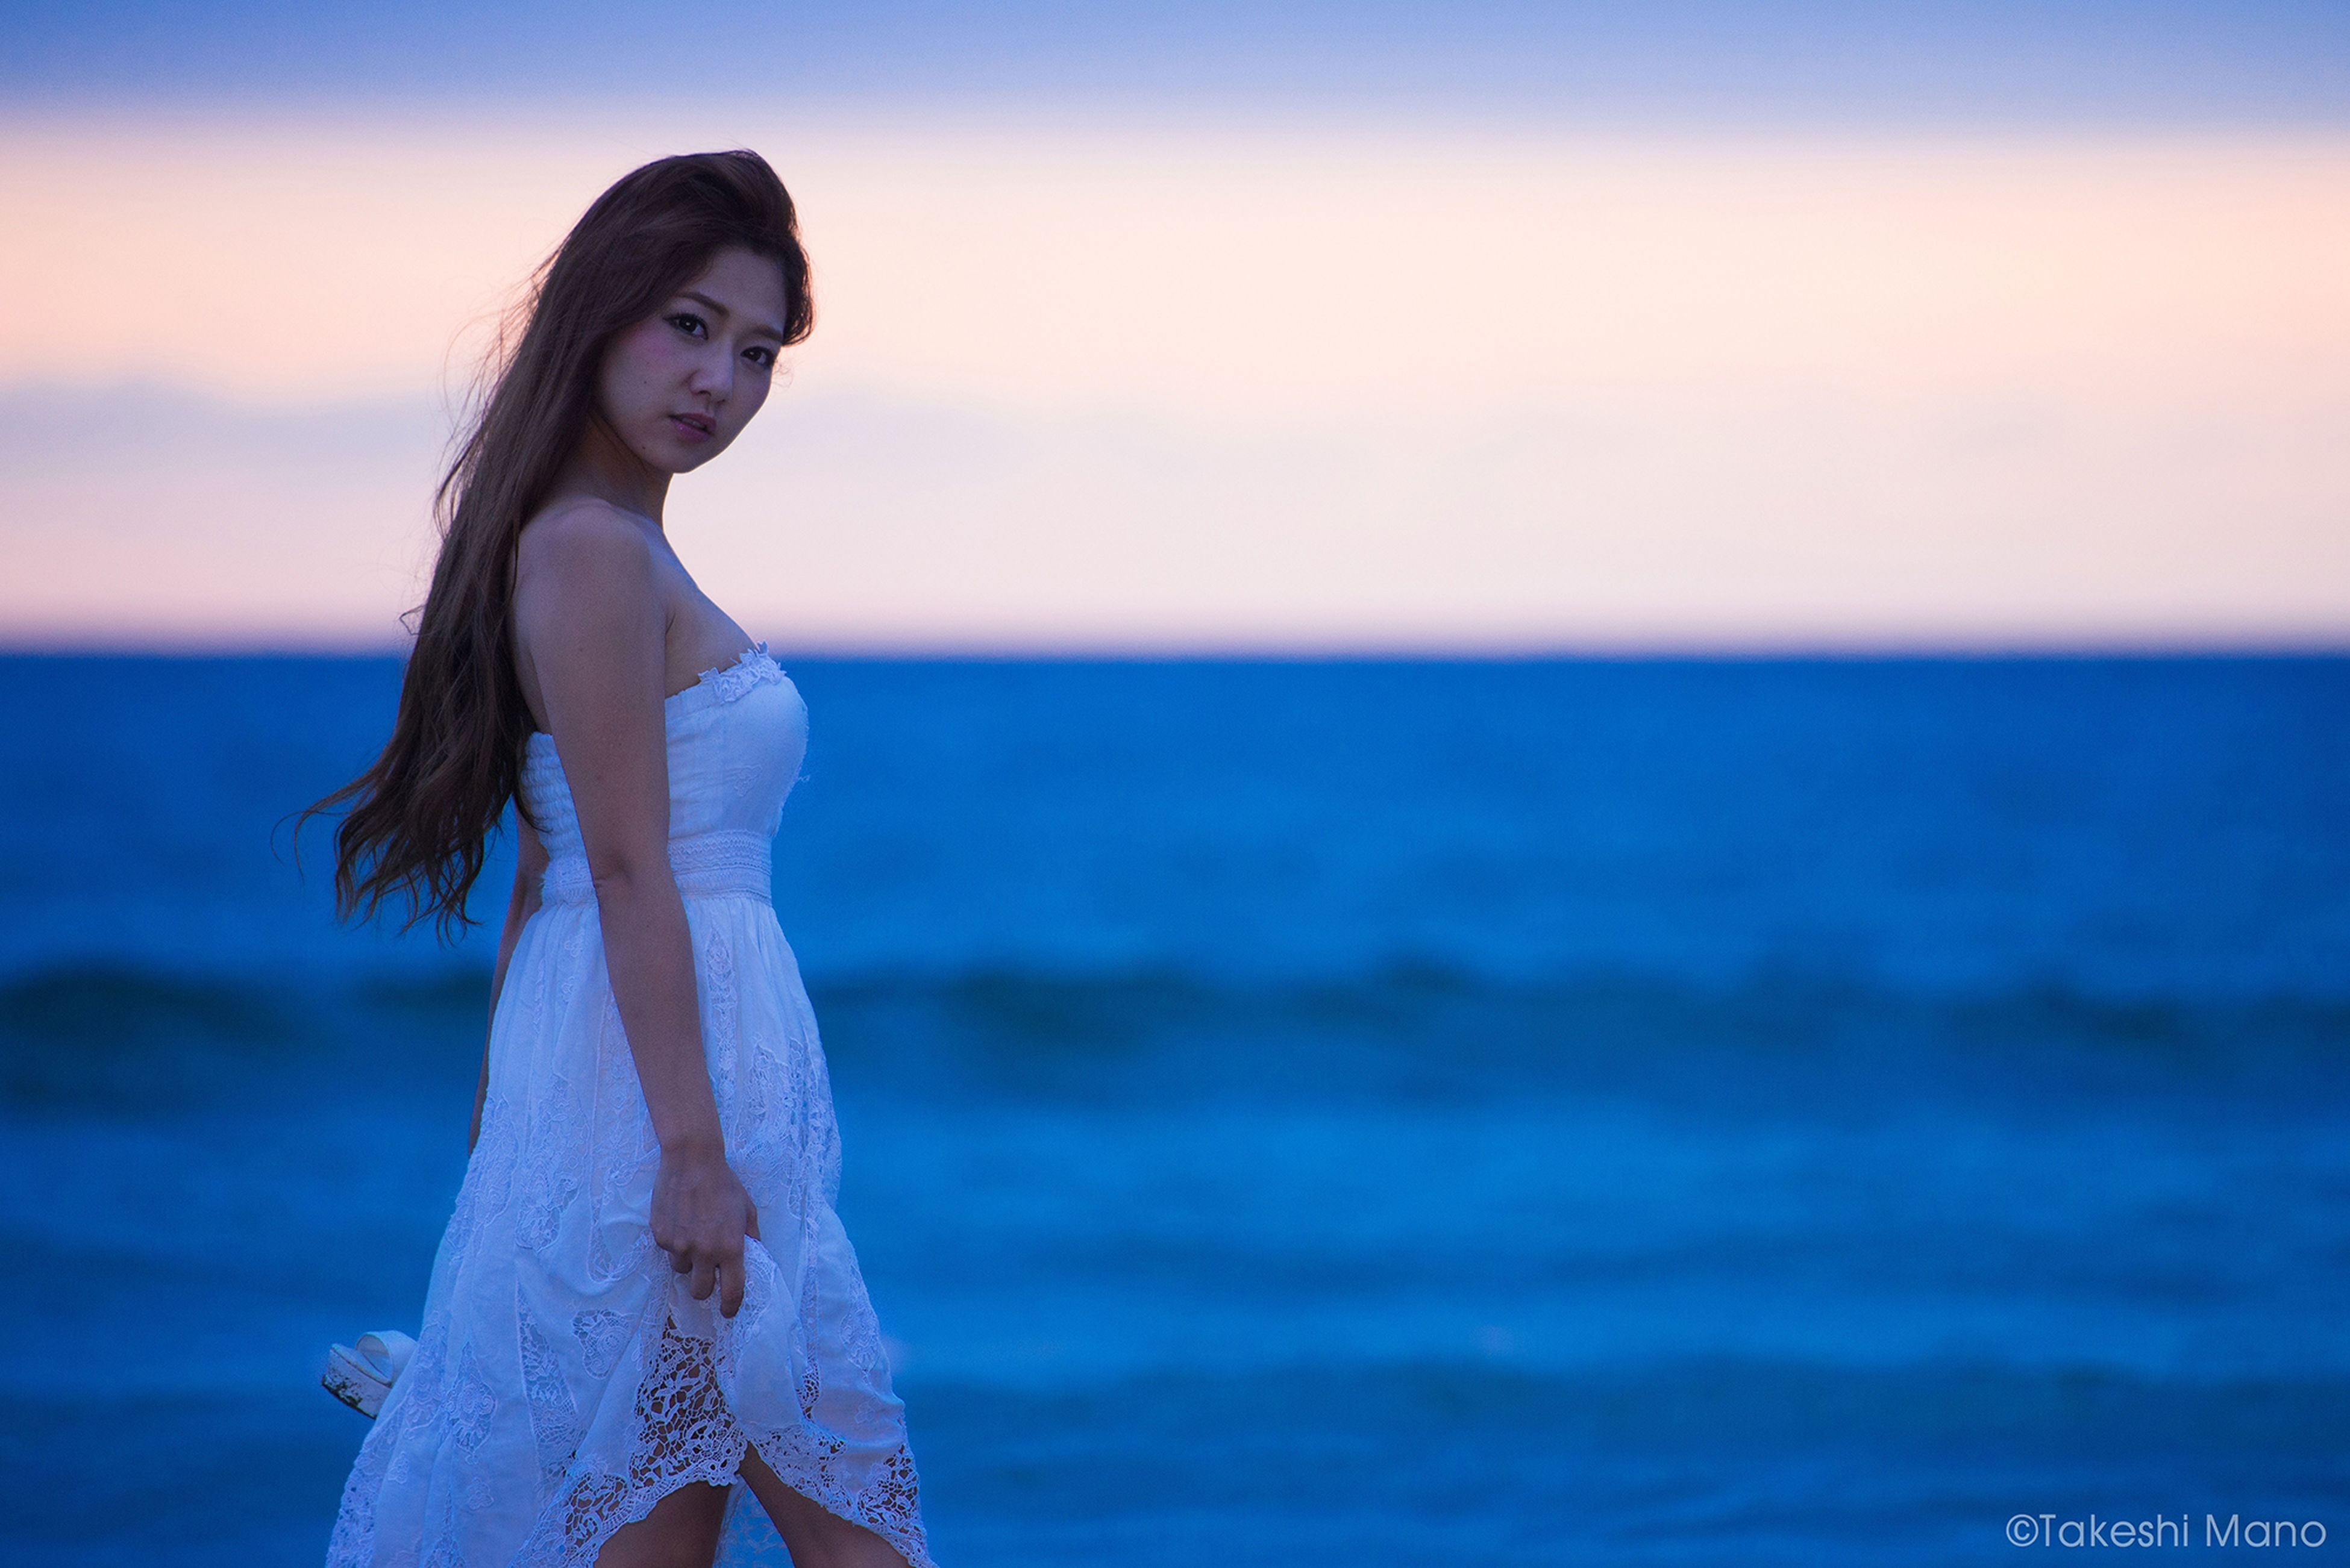 sea, young adult, lifestyles, leisure activity, standing, person, sky, horizon over water, water, three quarter length, looking at camera, portrait, focus on foreground, beach, young women, casual clothing, waist up